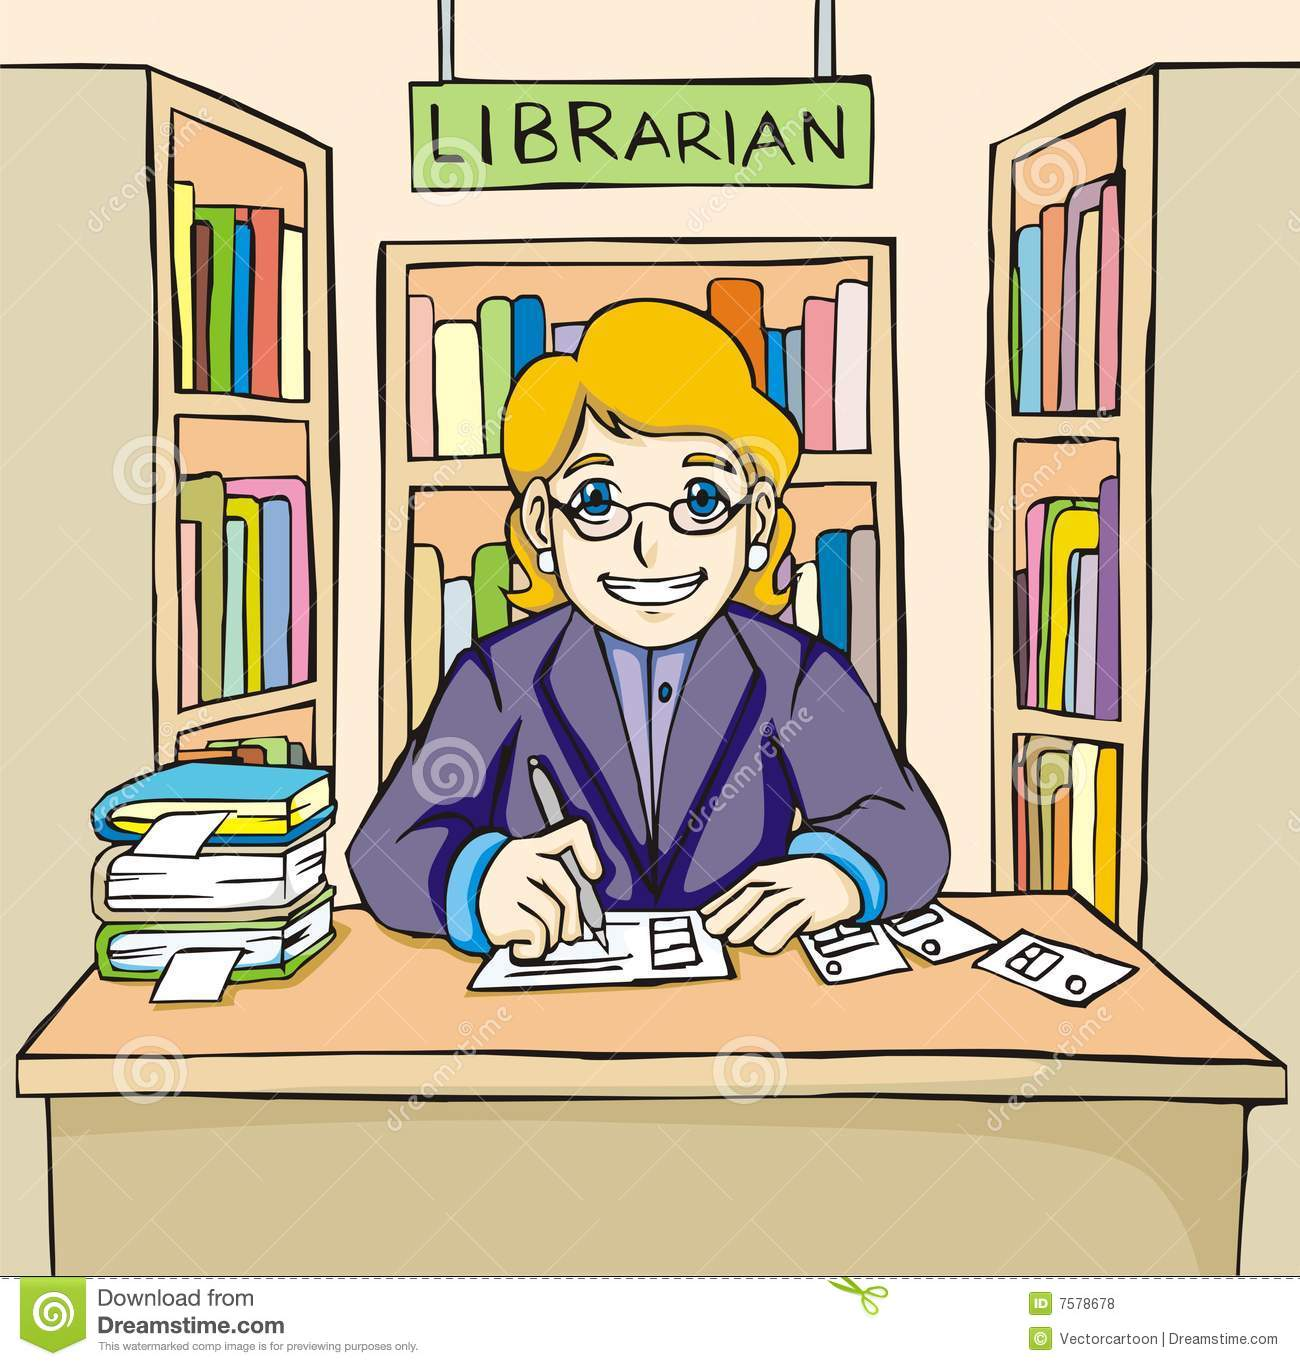 librarian pictures clip art-librarian pictures clip art-4